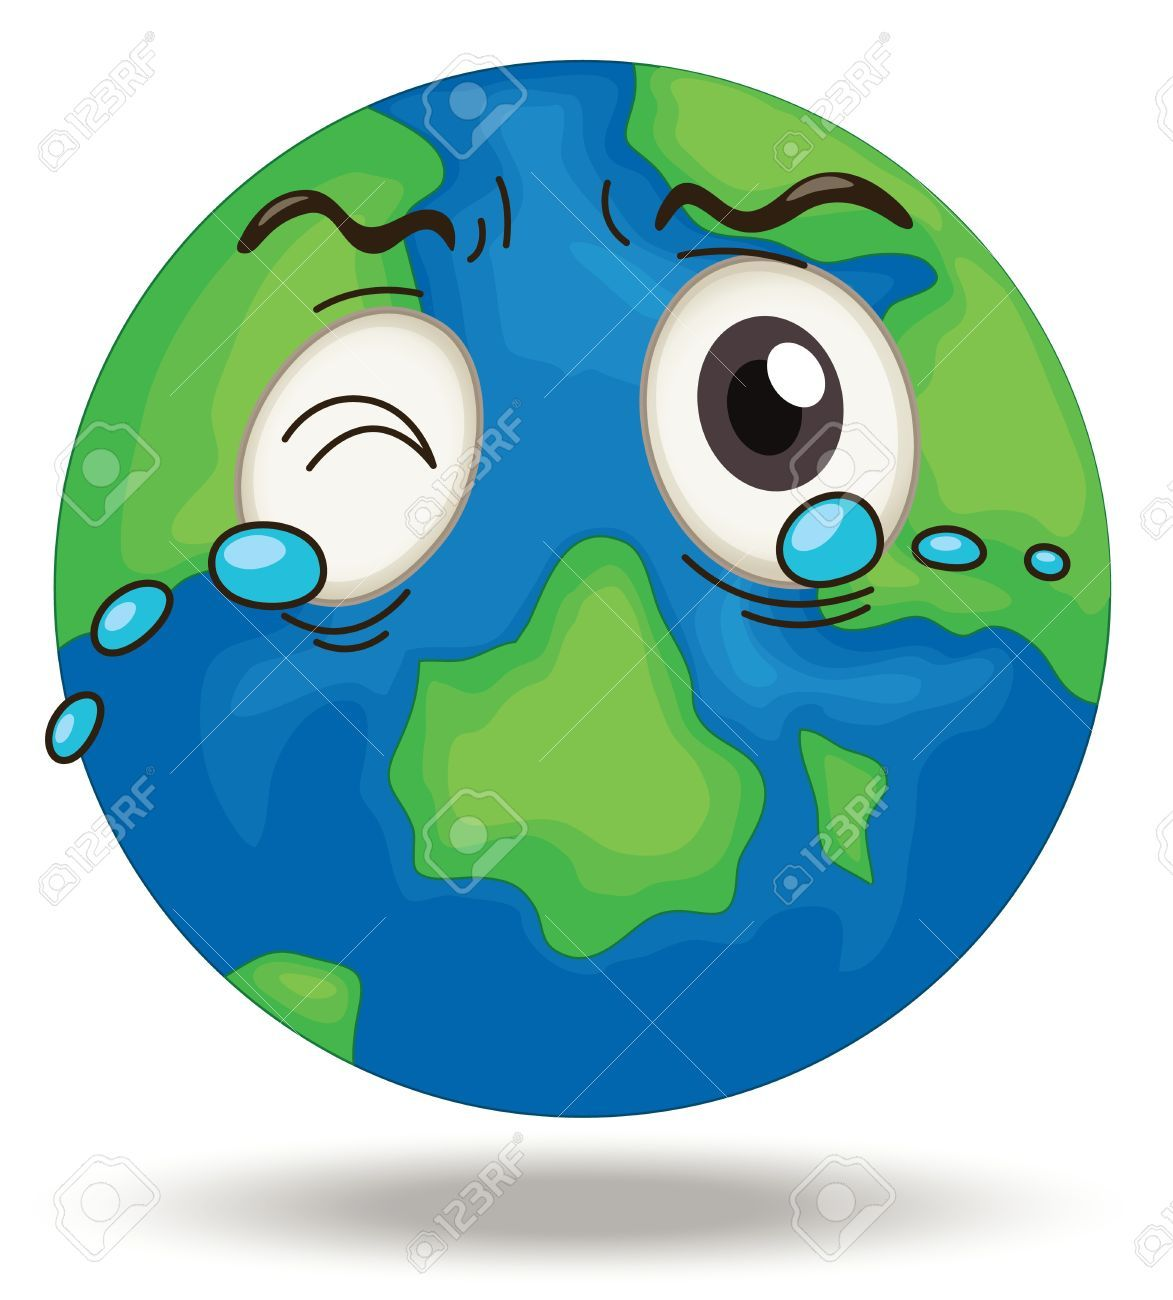 Crying earth clipart banner transparent library Crying earth clipart 6 » Clipart Portal banner transparent library